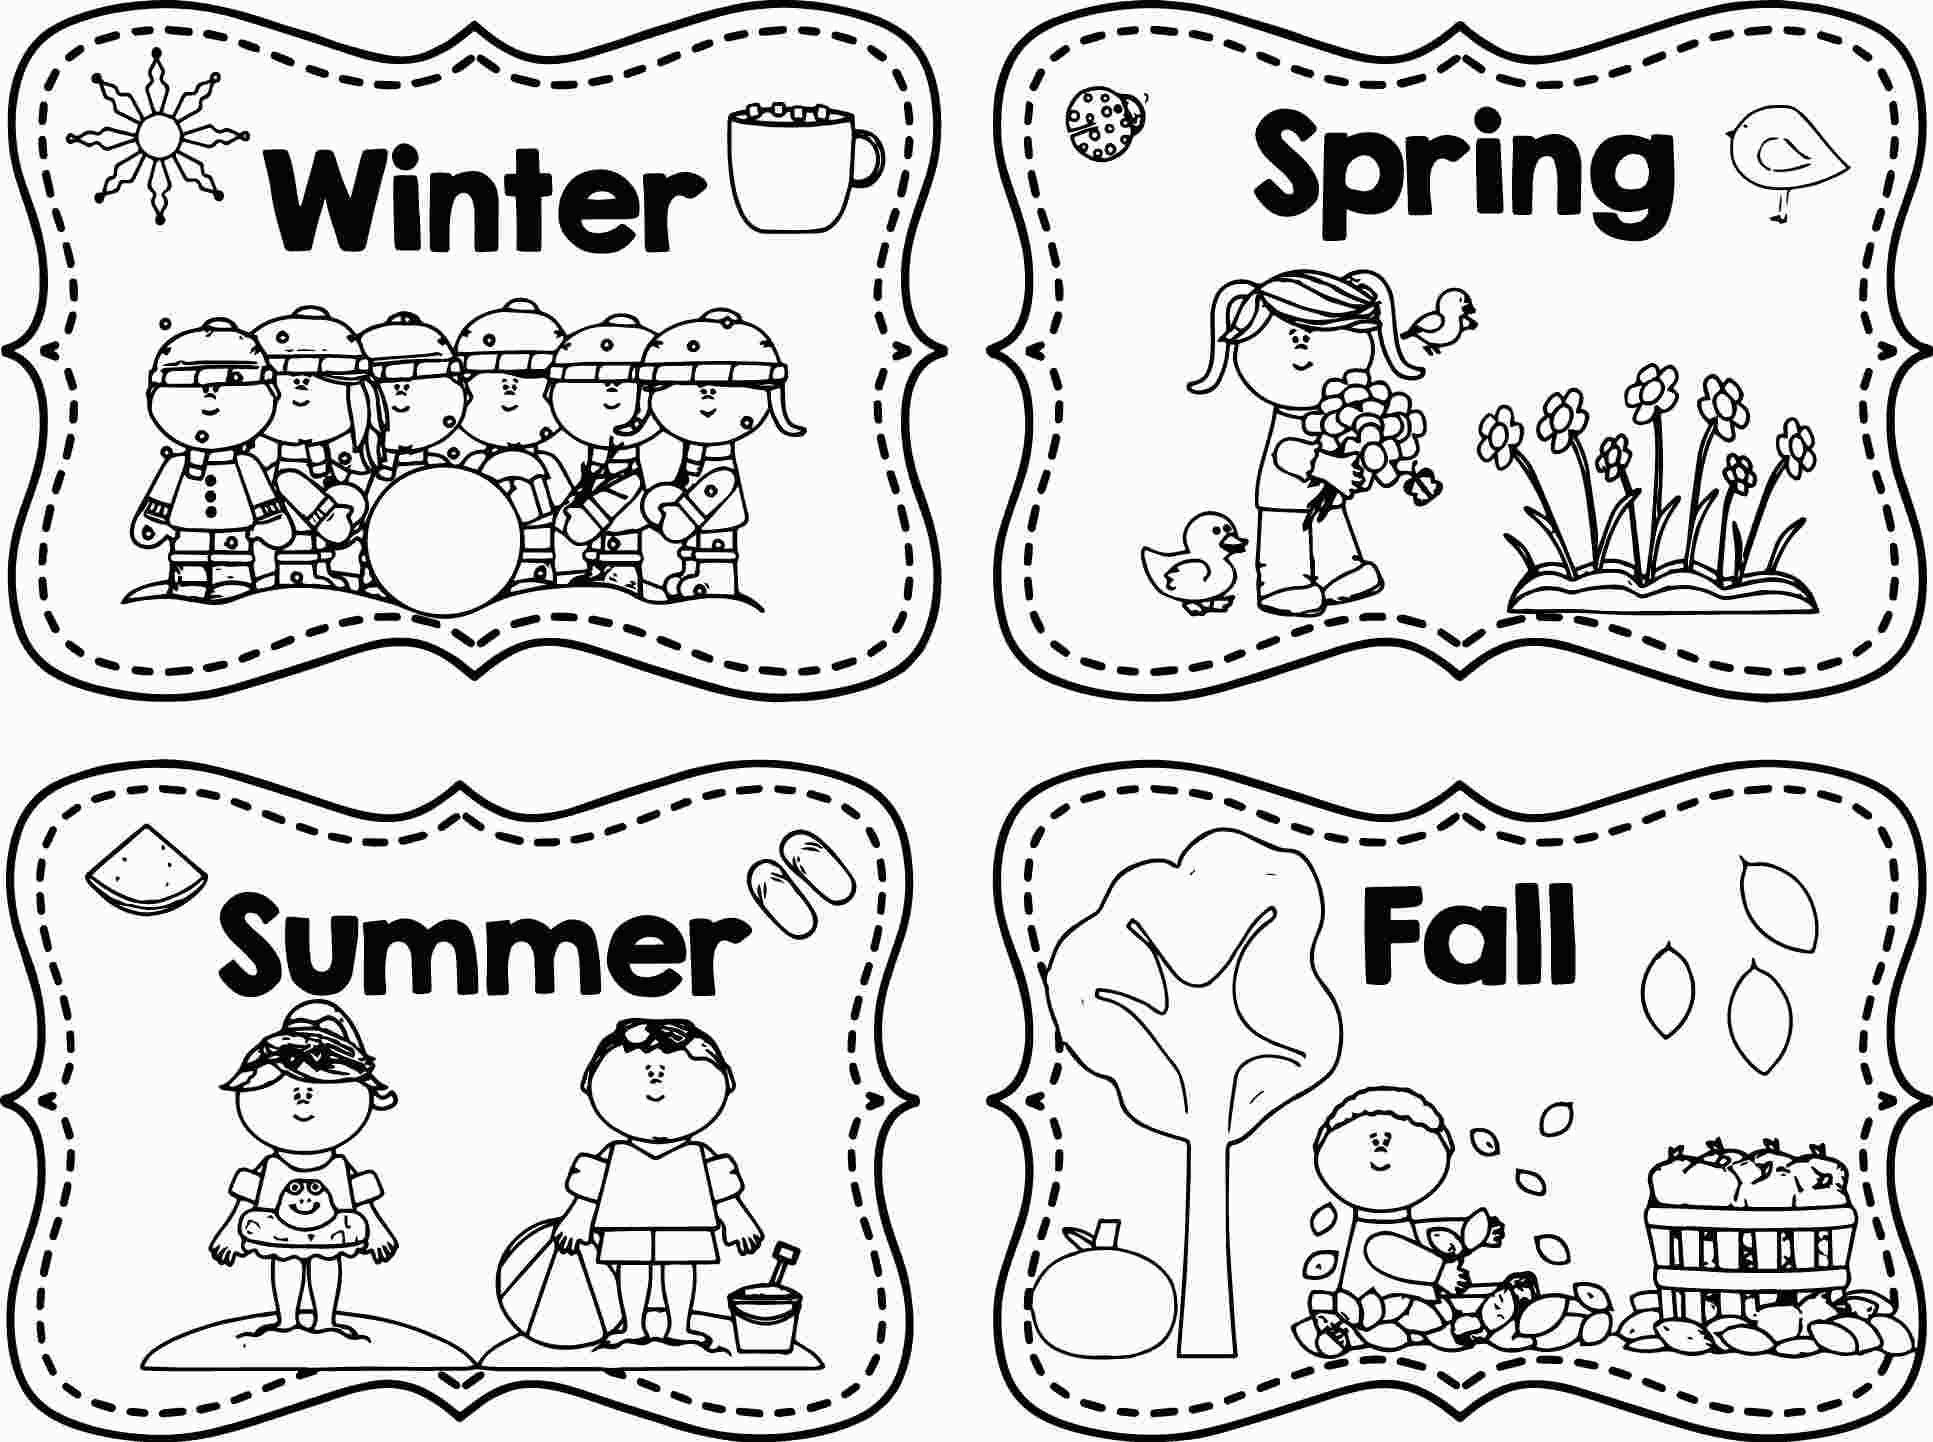 printable 4 seasons coloring page | seasons worksheets, fall